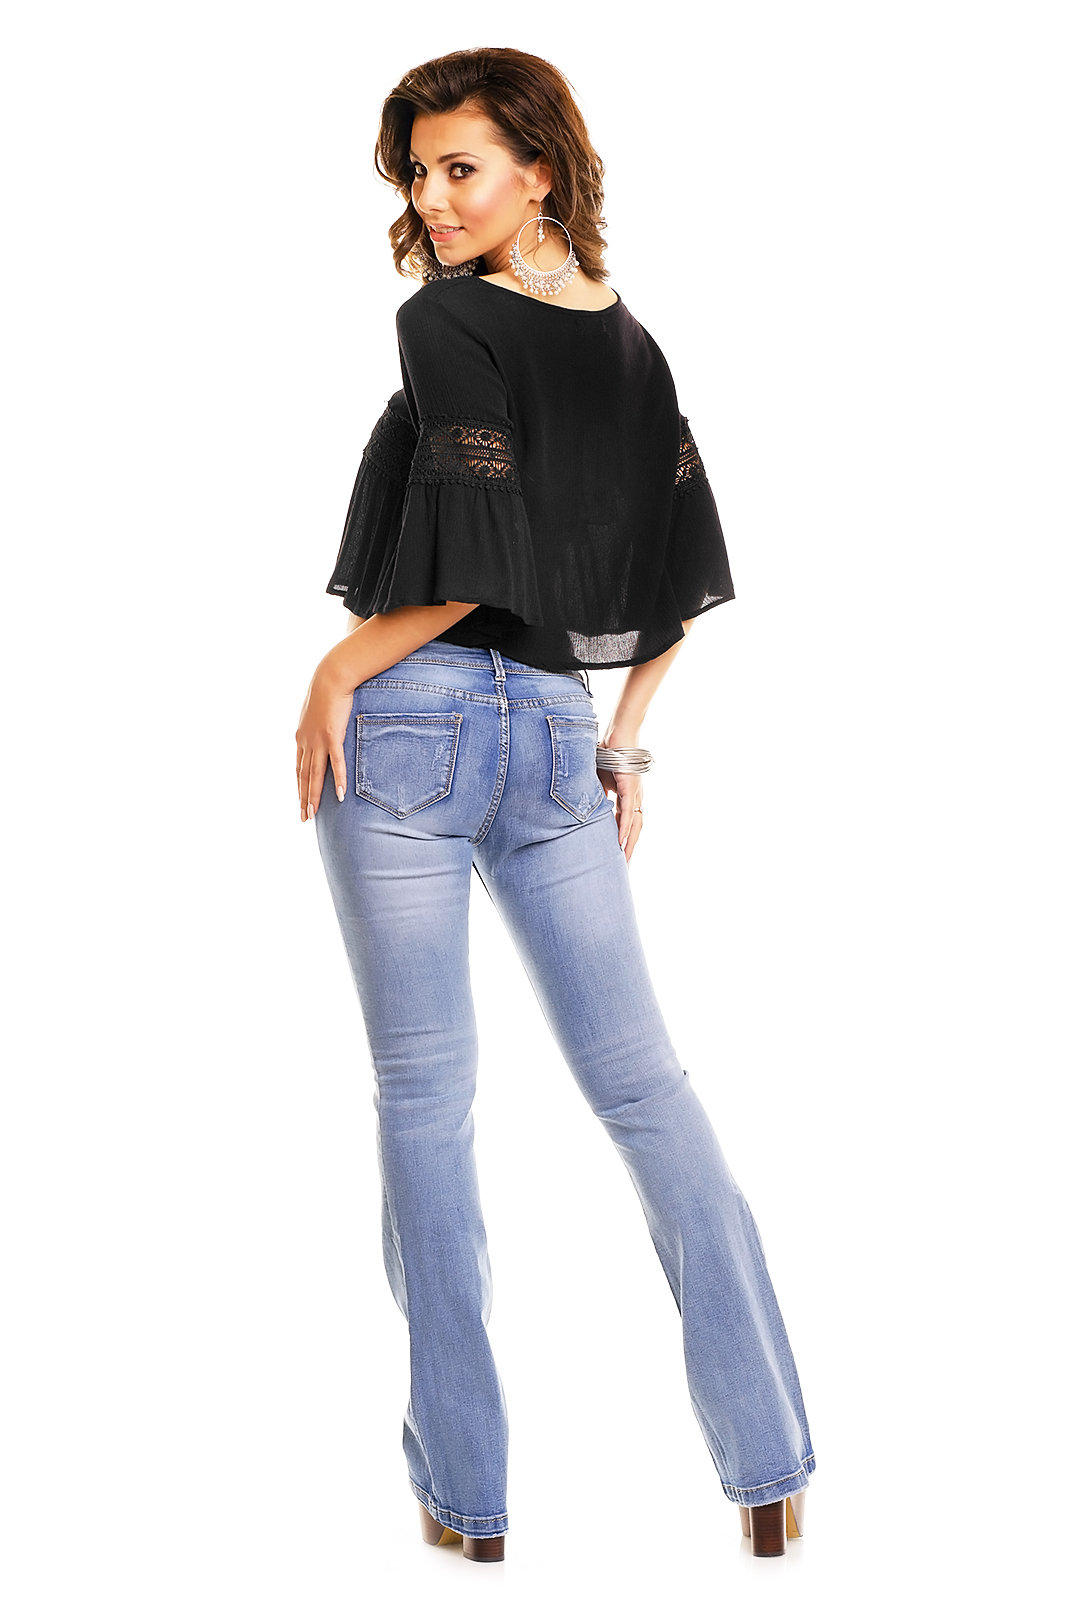 Mayaadi Damen Sexy Ibiza Bluse Strick Shirt Patry Top Tunika Sweatshirt MC3438